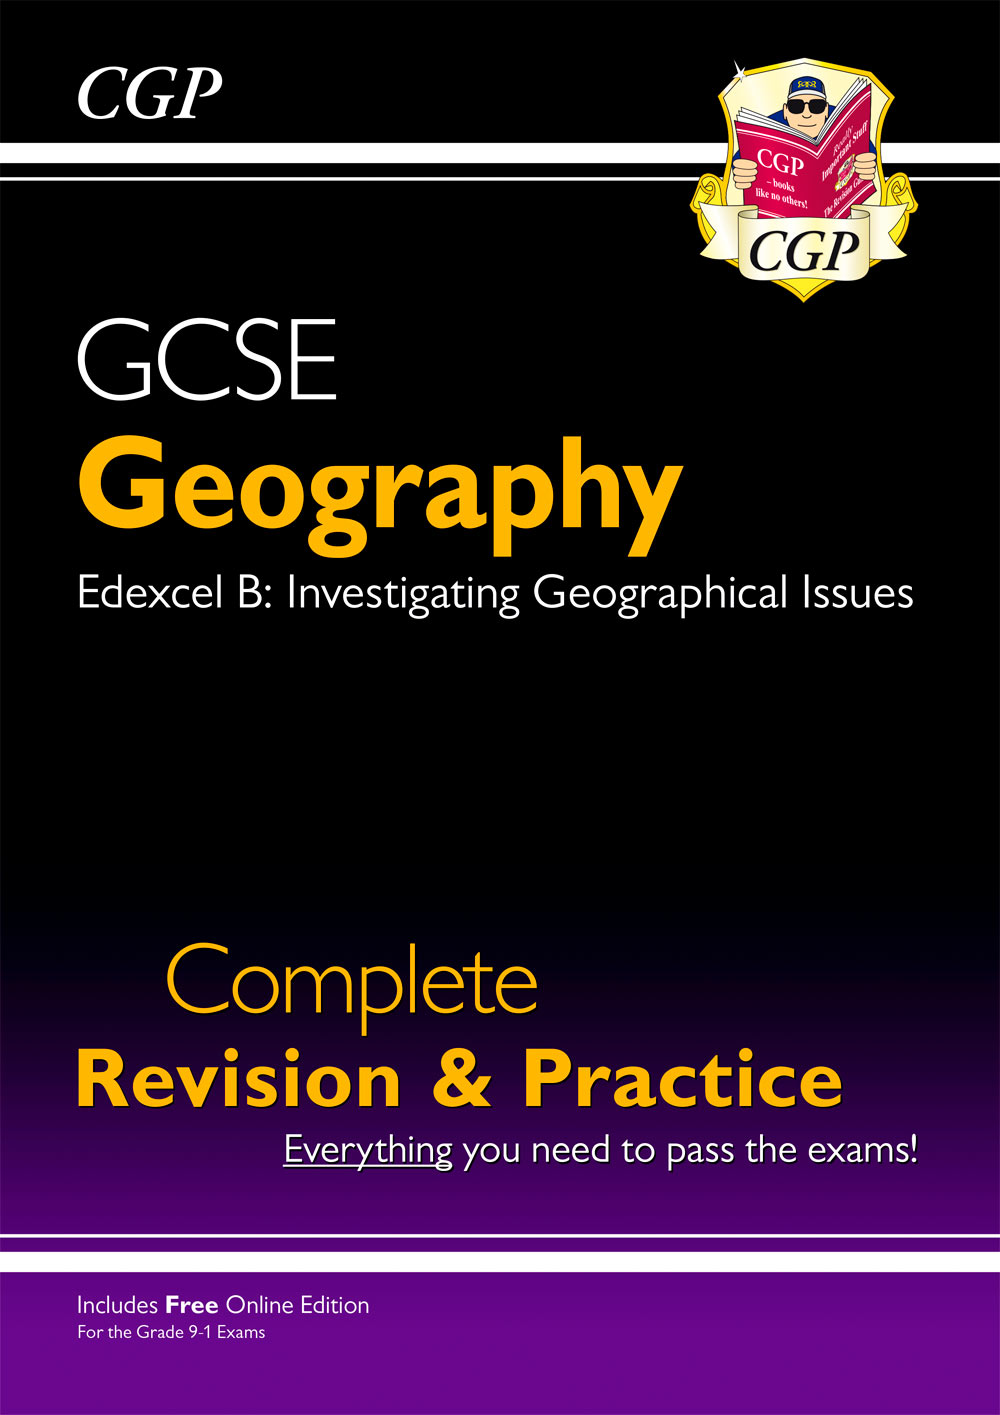 GES41 - New Grade 9-1 GCSE Geography Edexcel B Complete Revision & Practice (with Online Edition)